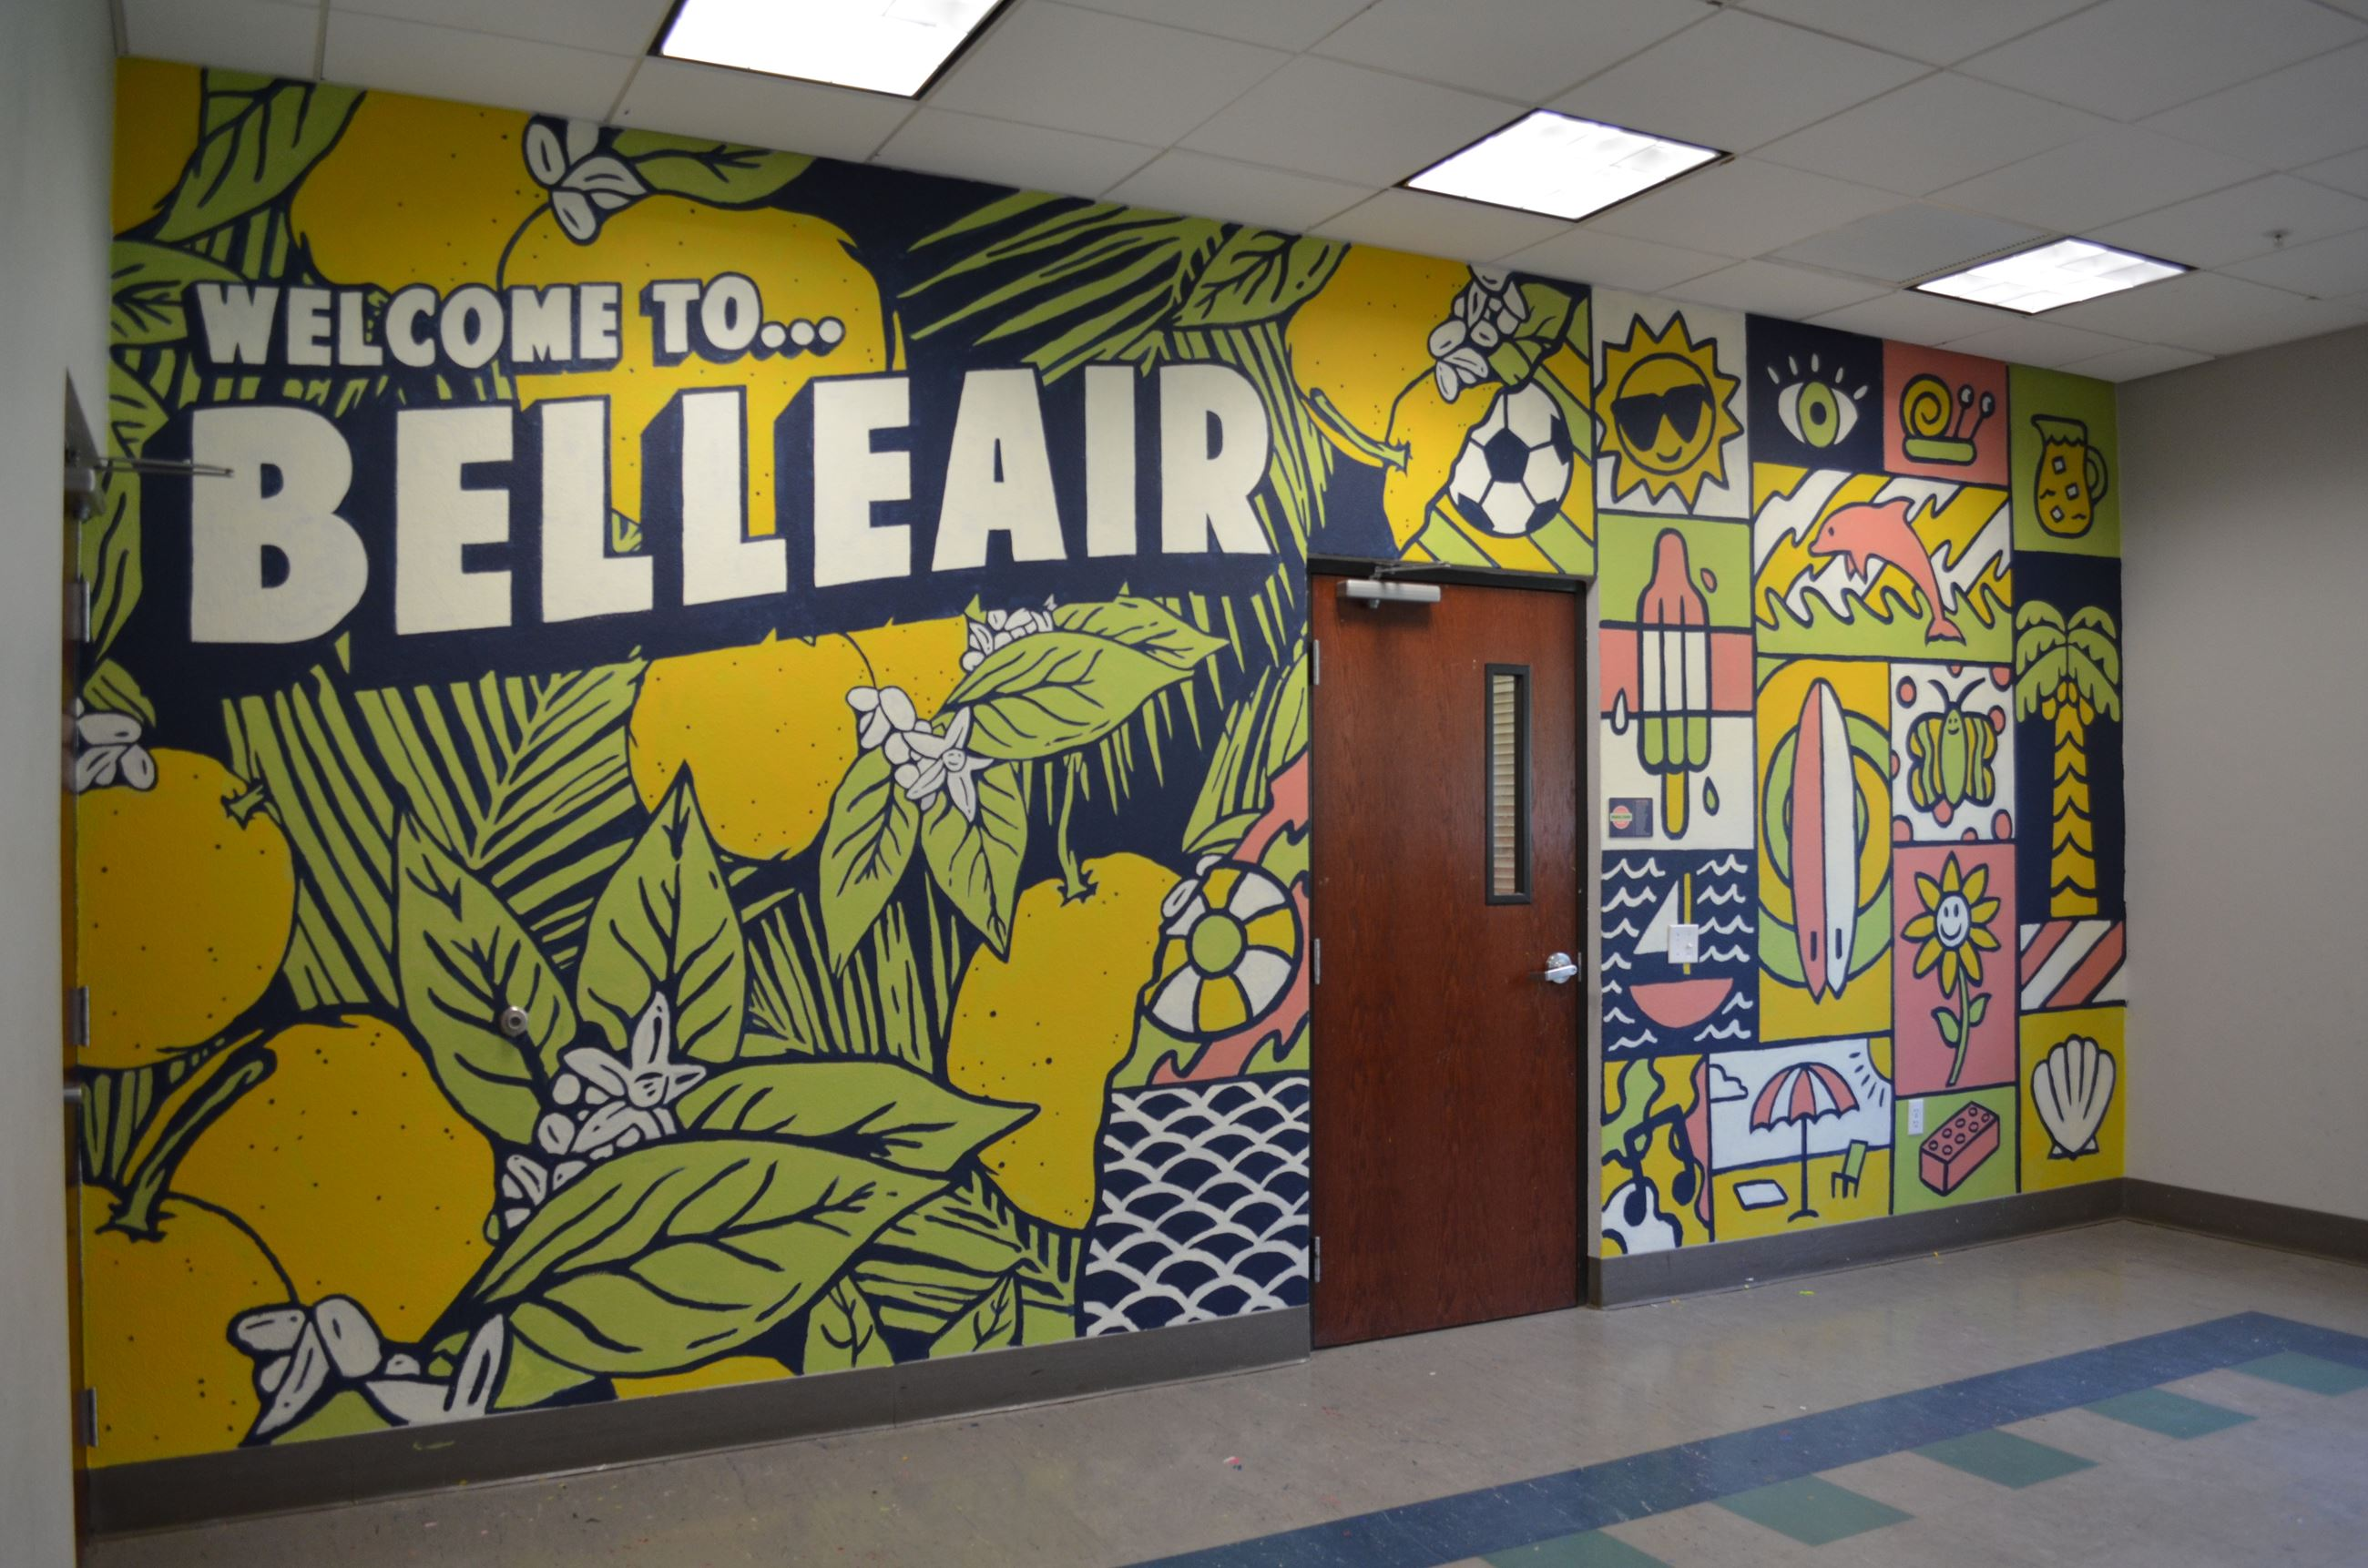 Welcome to Belleair mural wall with colorful oranges and flowers.